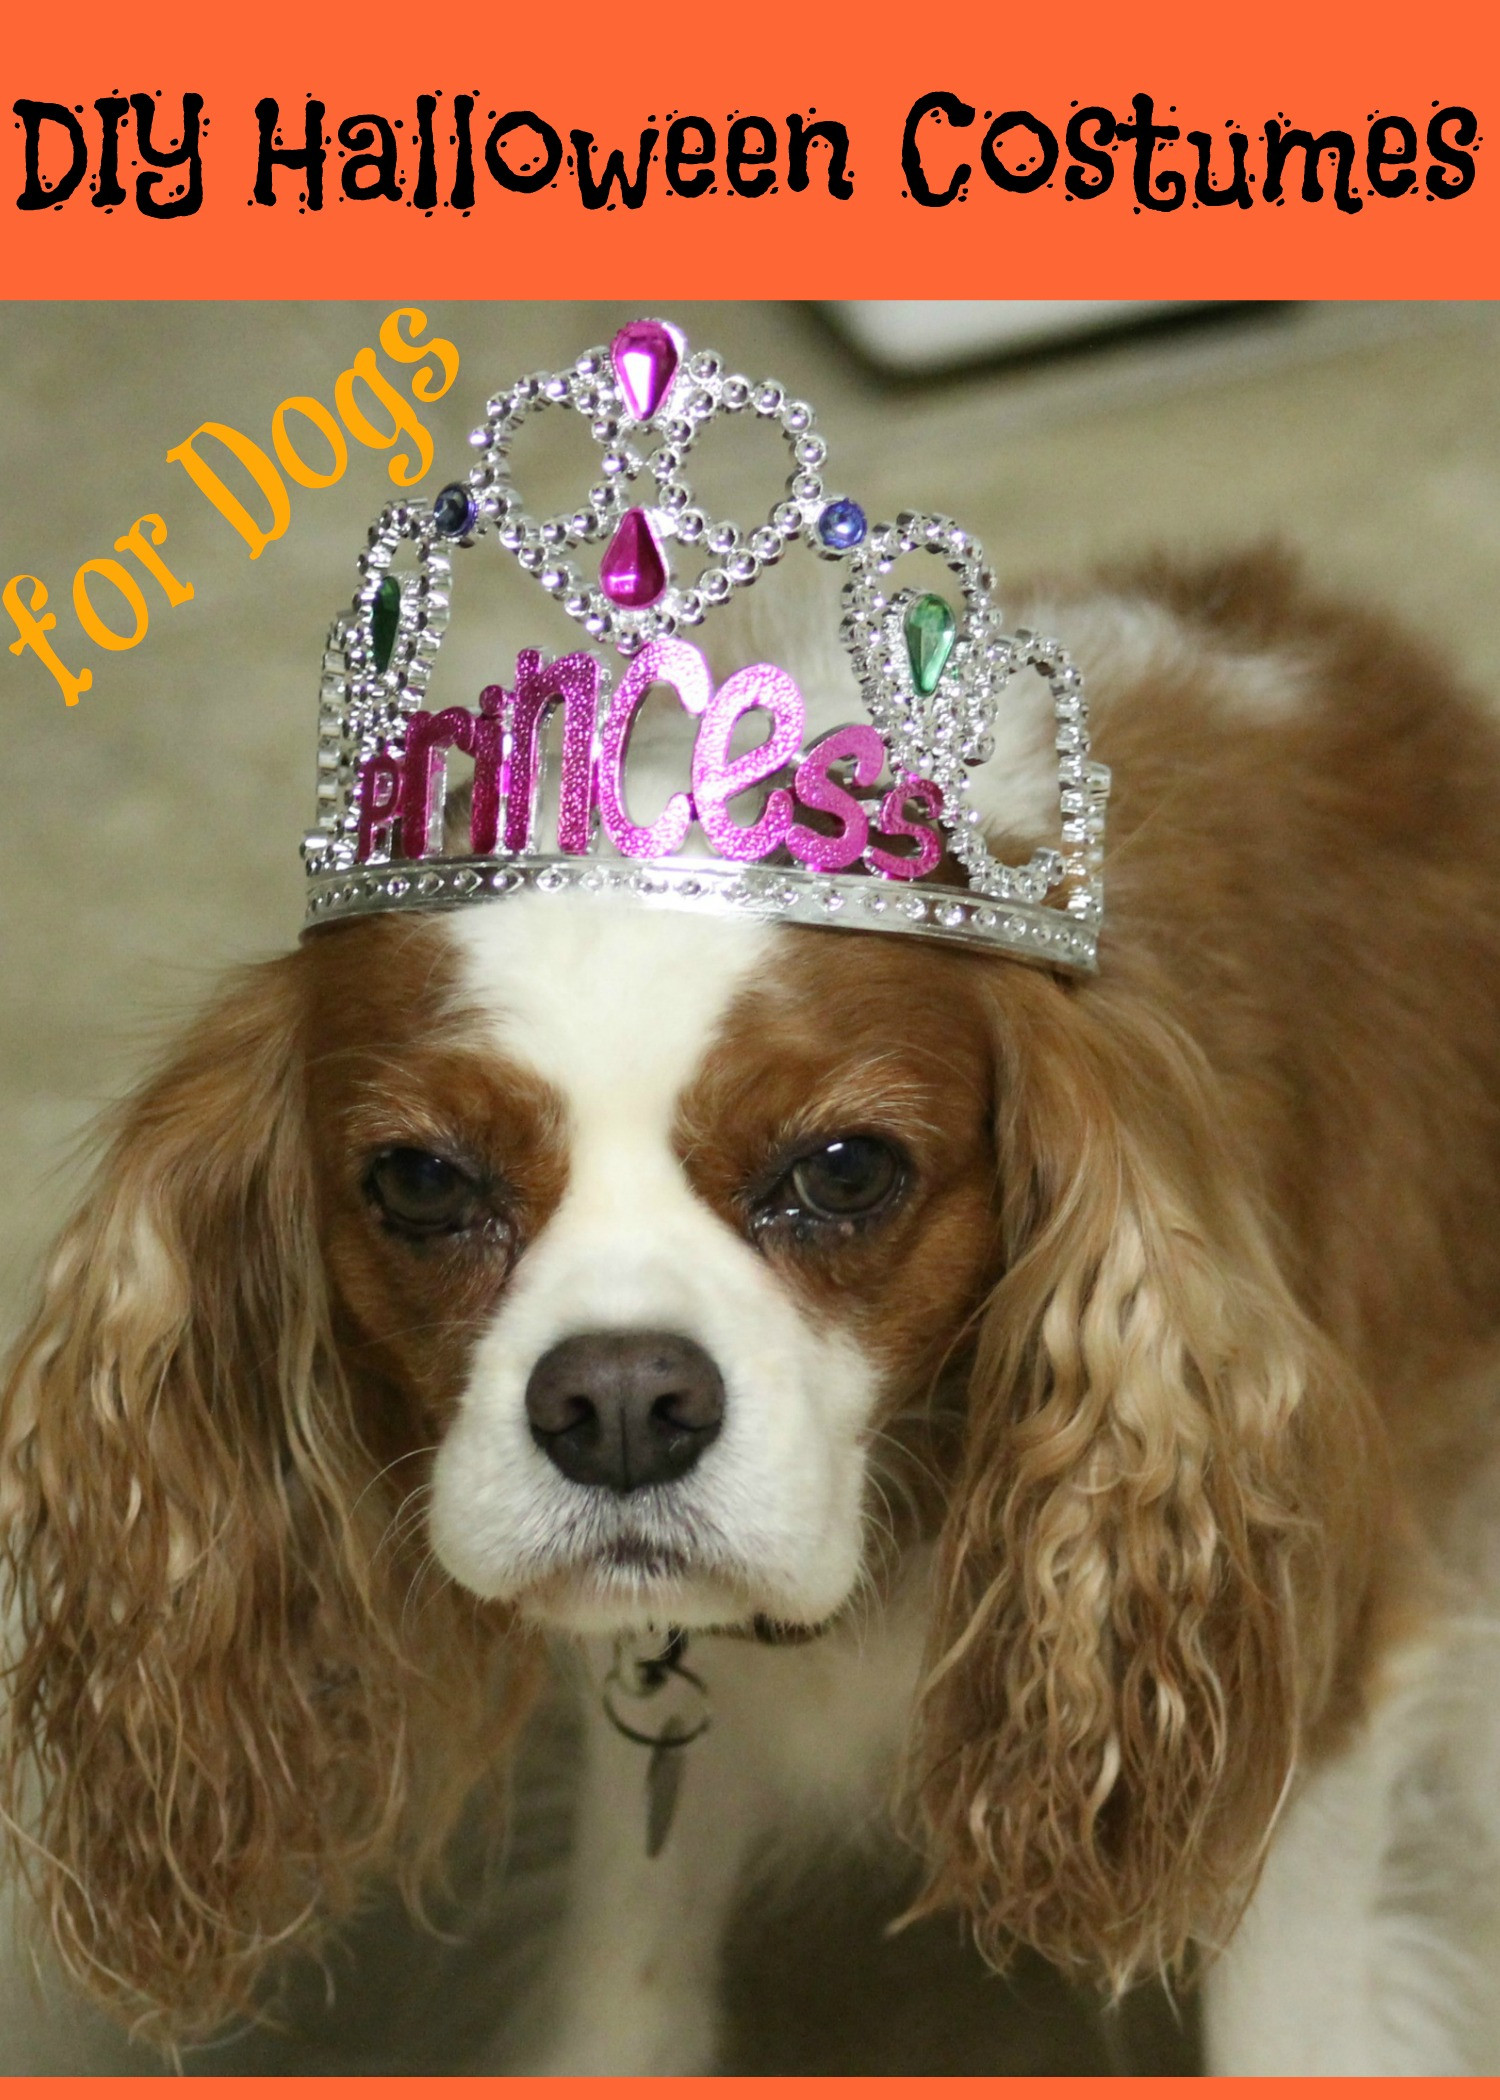 Best ideas about DIY Costumes For Dogs . Save or Pin 5 DIY Halloween Costumes for Dogs Now.